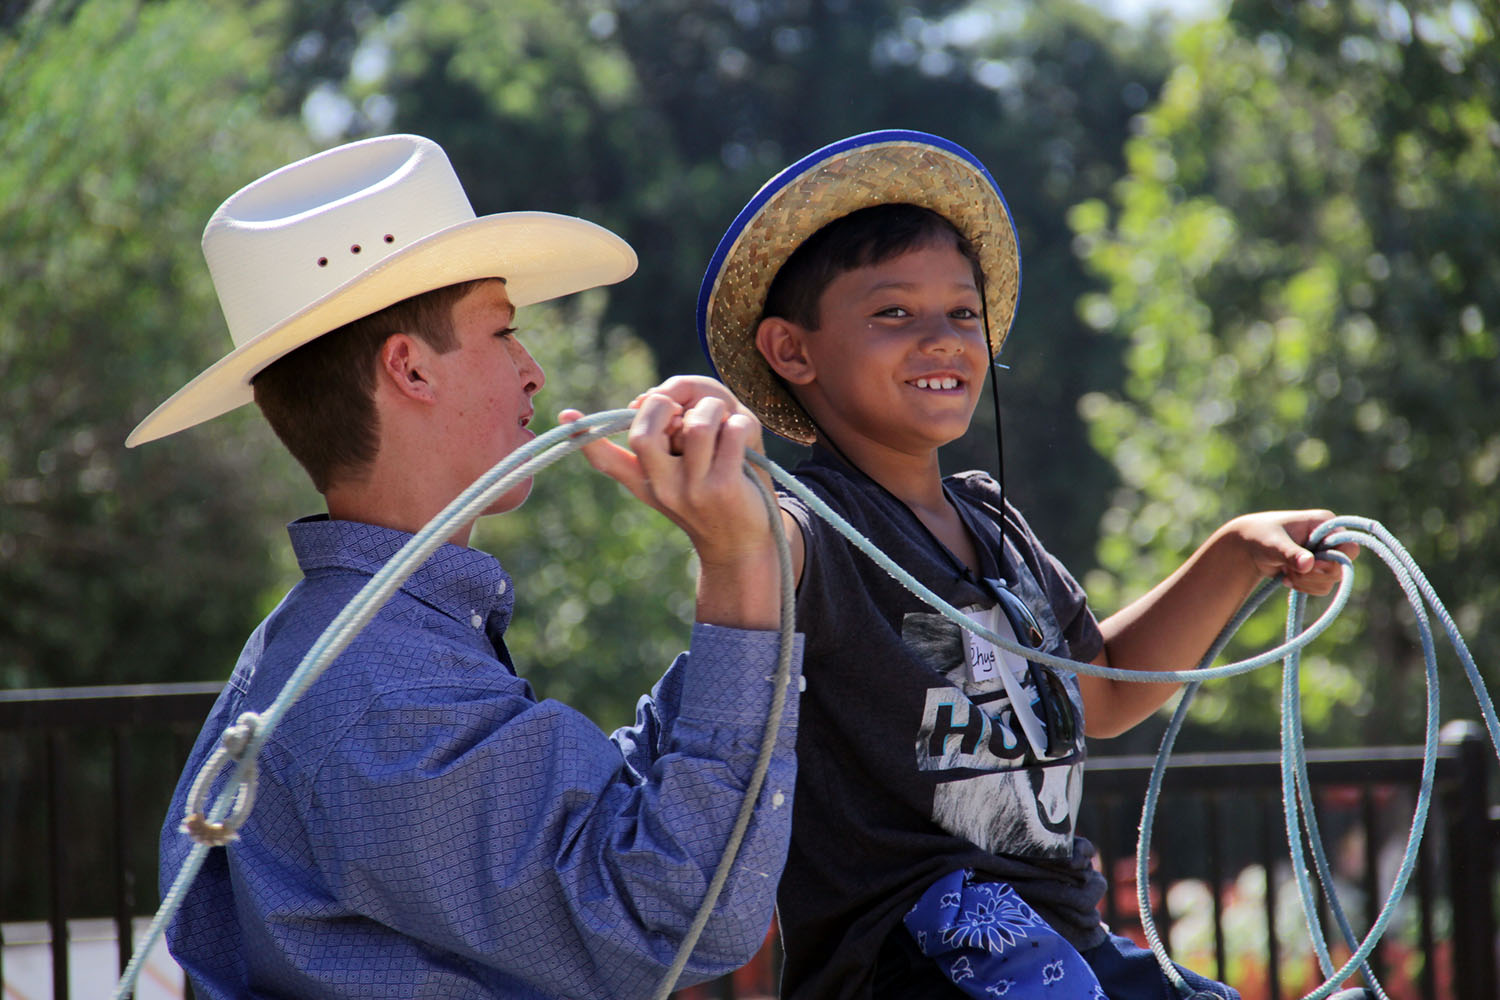 """Lance """"Deeg"""" Laster shows Rhys Taufaasau some lassoing techniques as part of the annual Cowboy Camp held at the J.F. Shea Therapeutic Riding Center on Wednesday, Aug. 14. Photo: Shawn Raymundo"""